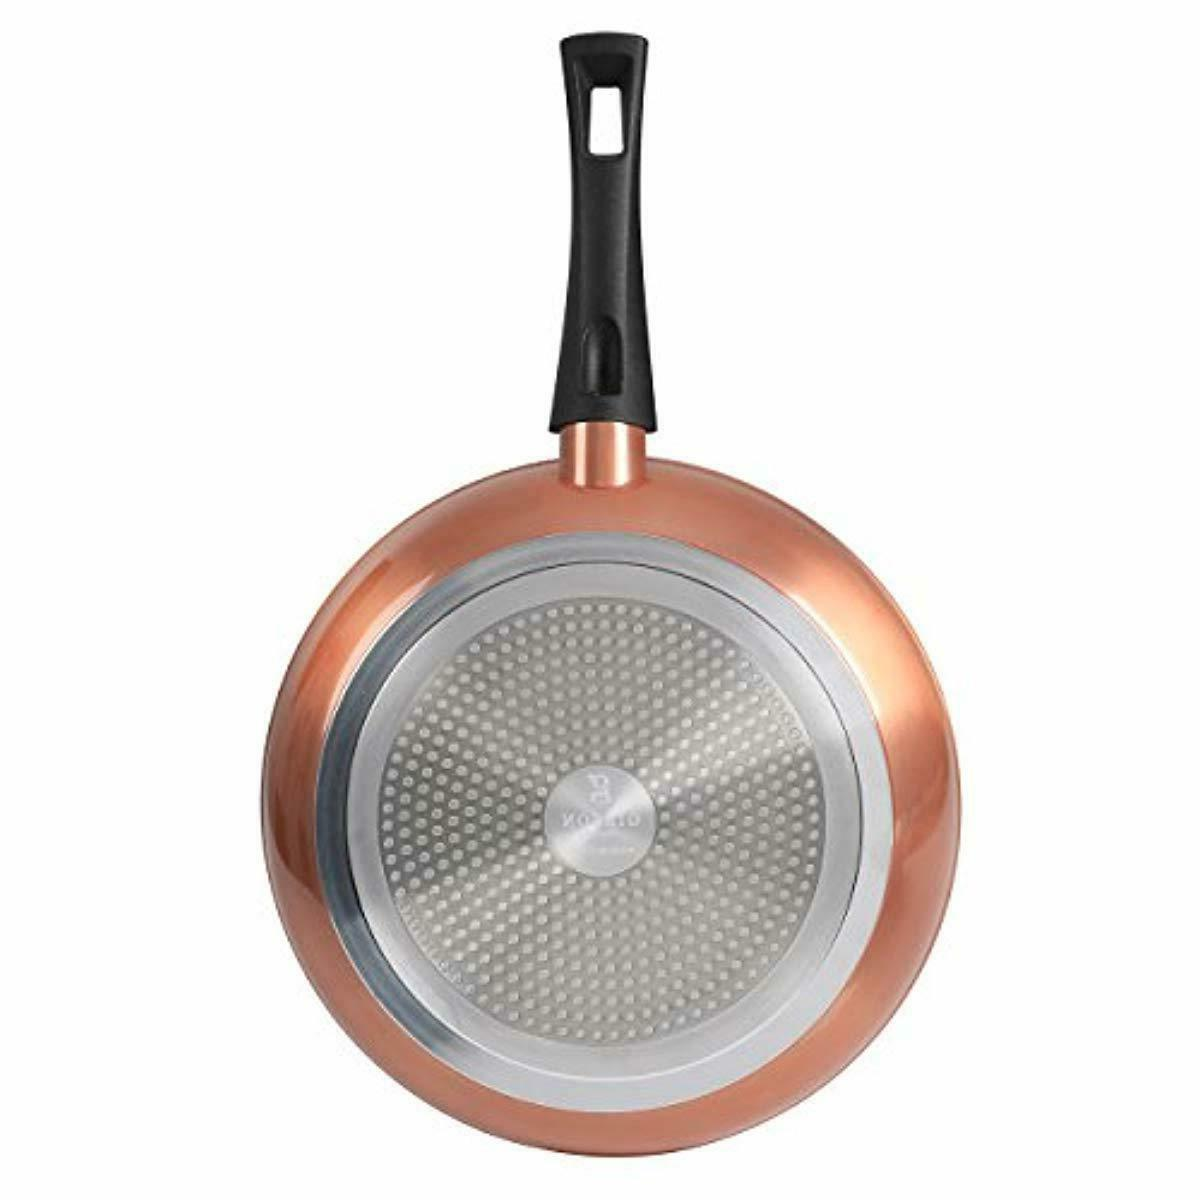 12/10in 12-Inch, Copper Stainless Induction